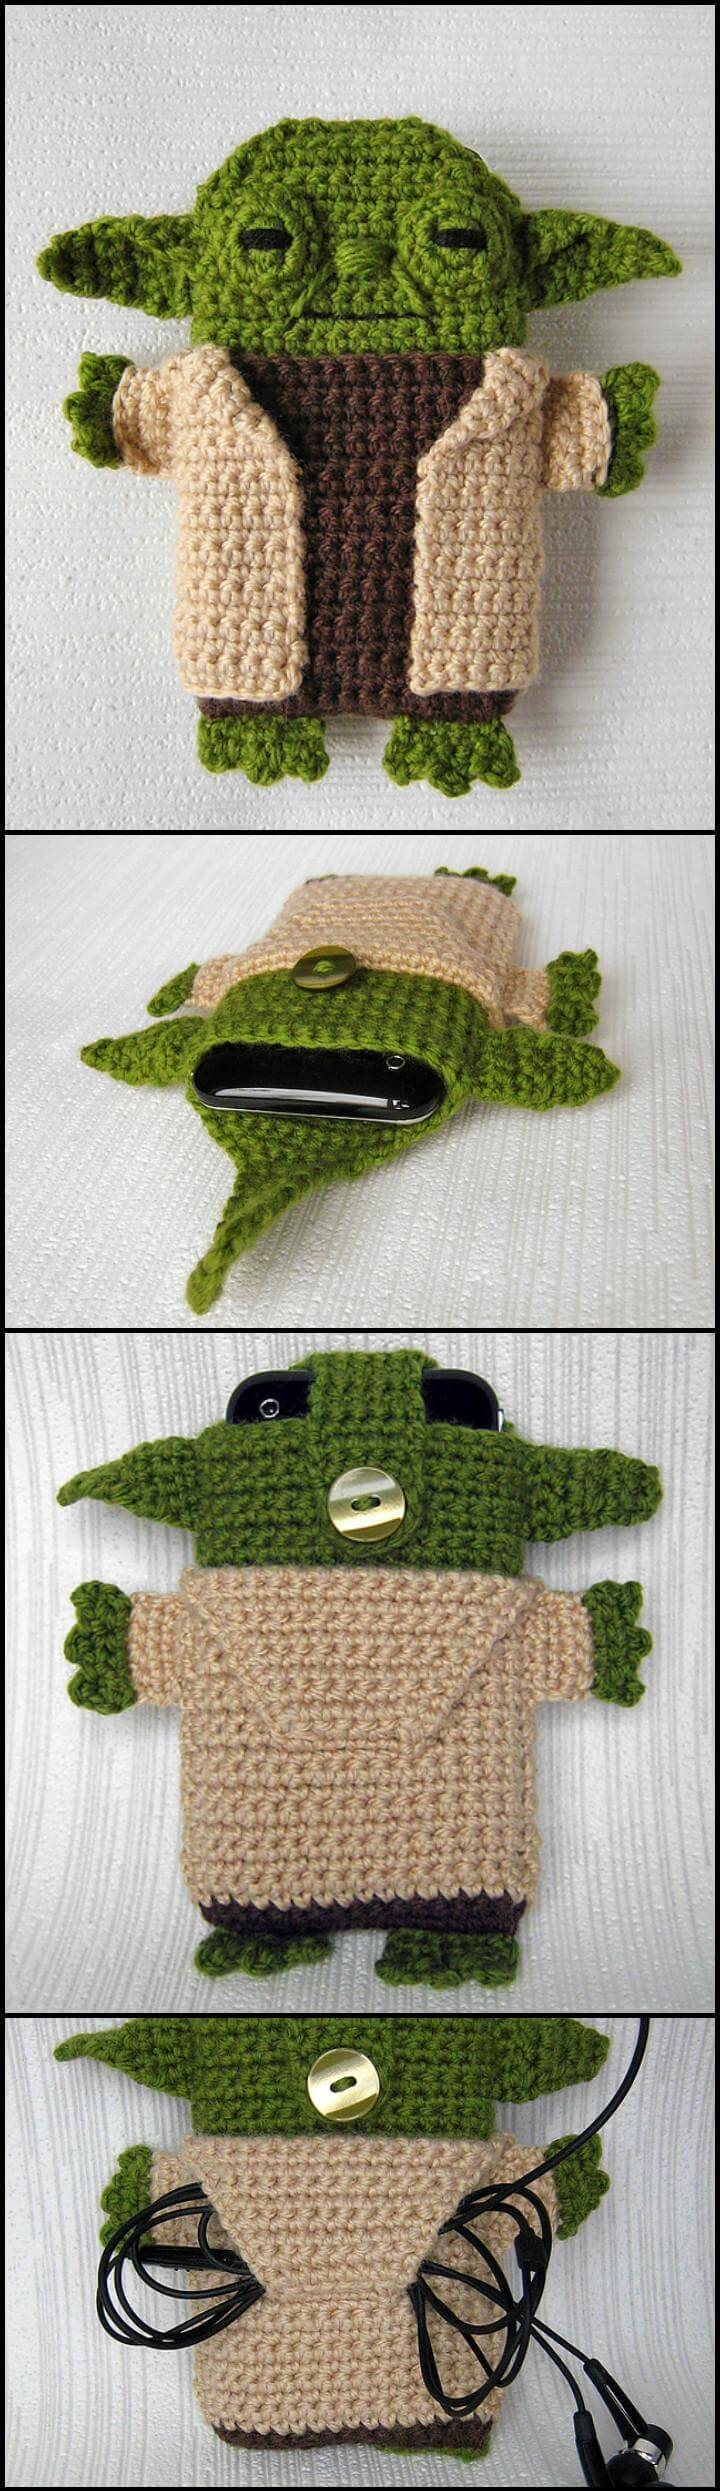 Free Crochet Star Hook Case Pattern : 50 Free Crochet Phone Case Patterns - Page 3 of 5 - DIY ...